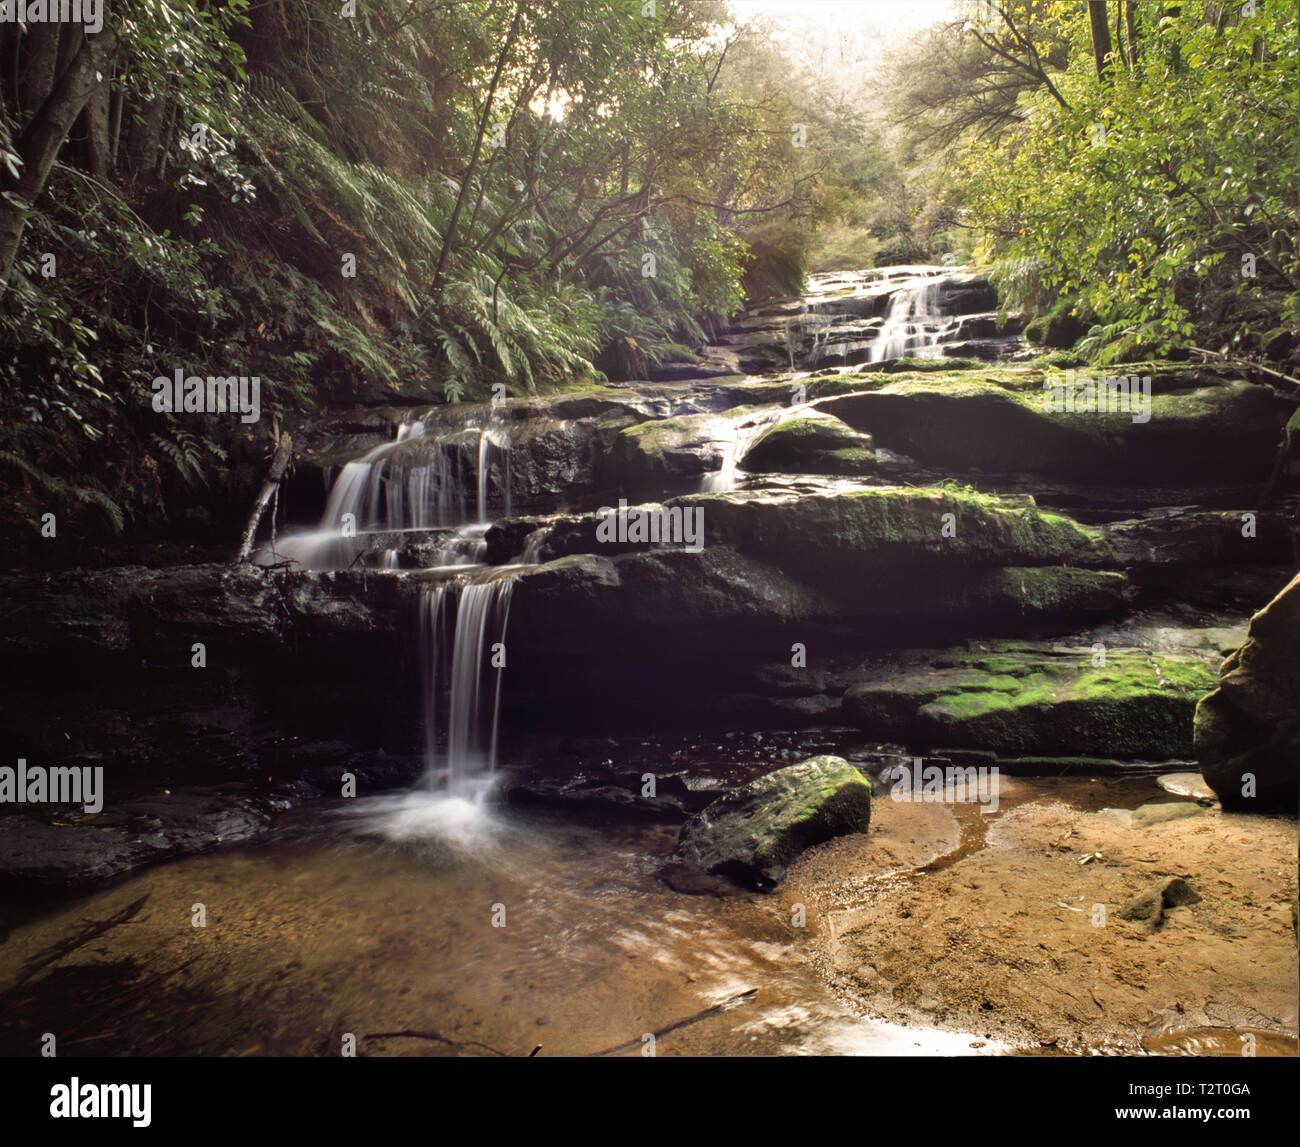 Water flow at Leura Falls, New South Wales. - Stock Image